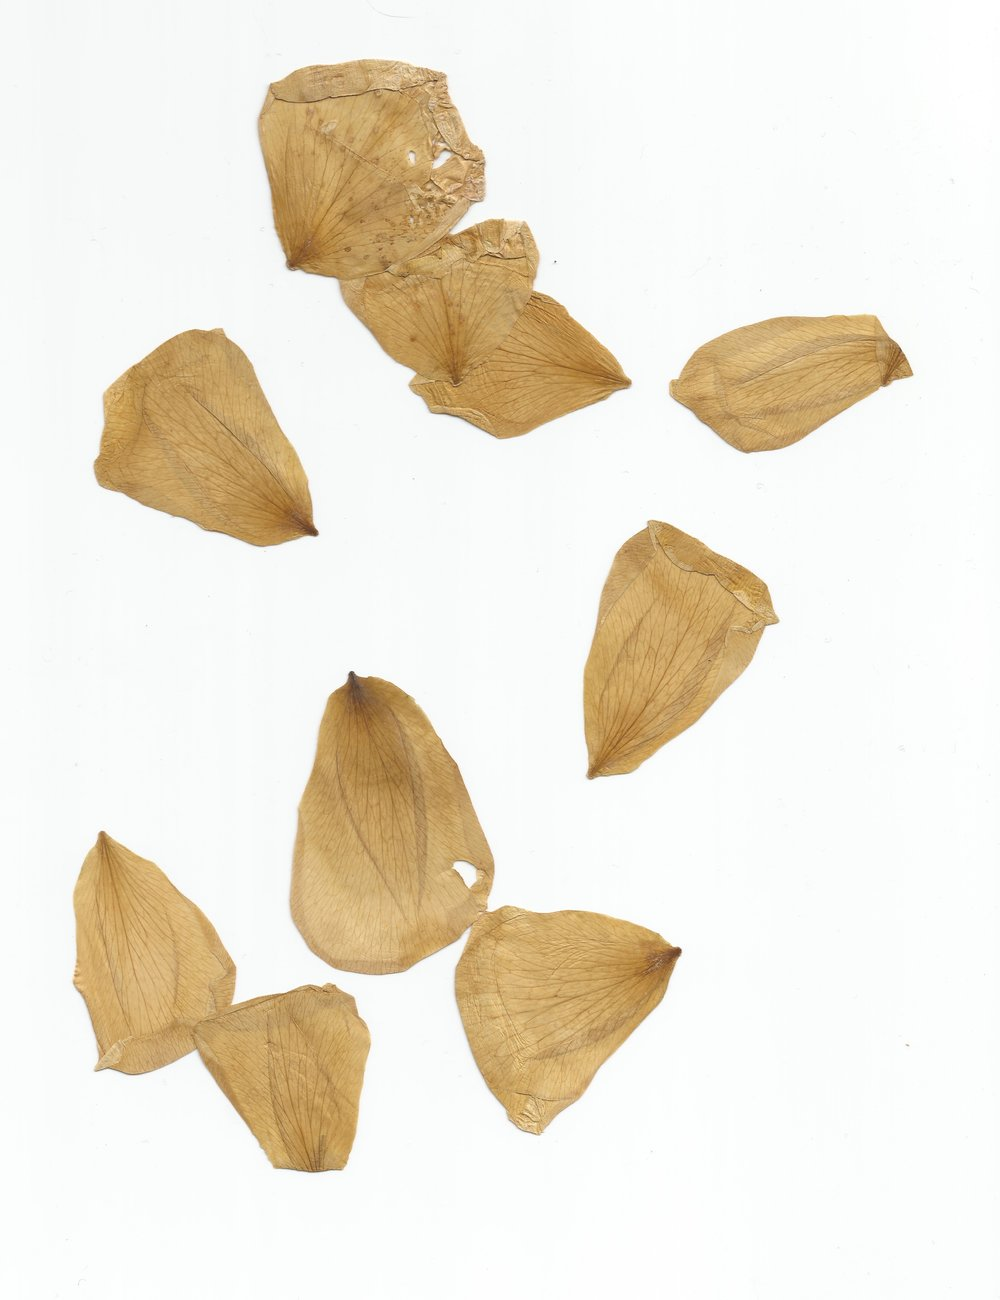 My maternity leave project was going to be creating paintings from dried flowers I collected at special moments during my pregnancy.  Turns out, I don't know how to dry flowers and none of them turned out except these rose petals.  This is from a garden rose Ben picked for me when I found out I was pregnant.